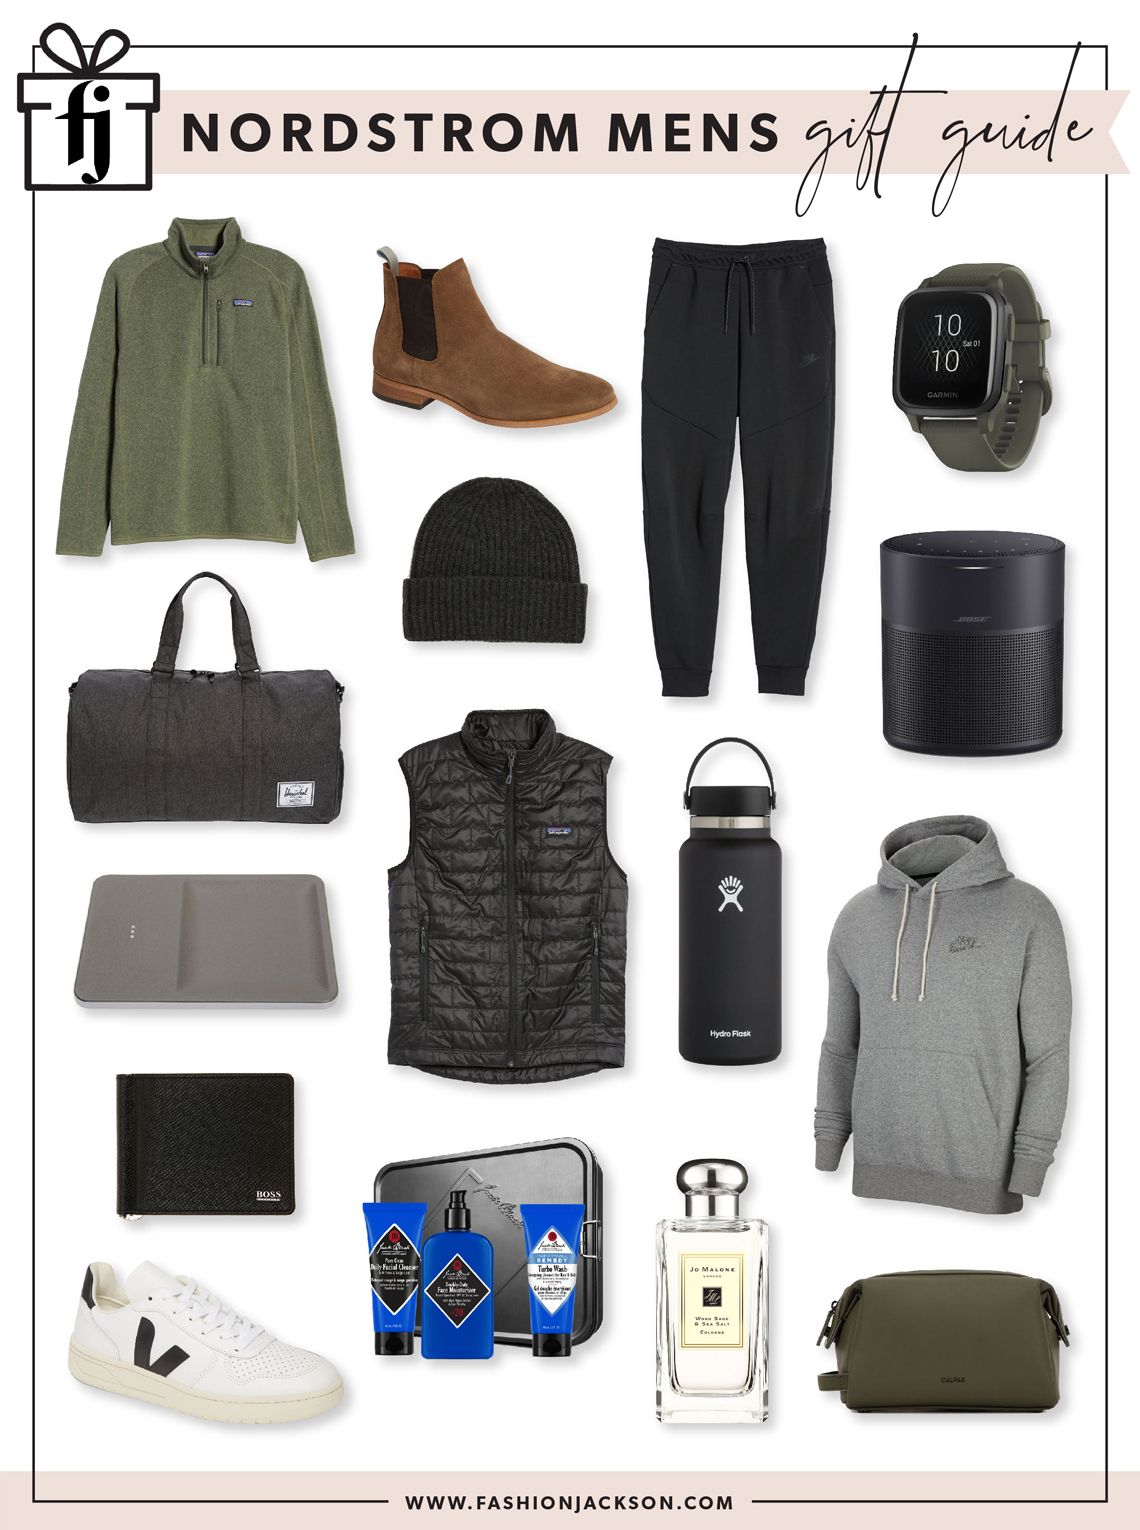 Fashion Jackson Holiday 2020 Nordstrom Mens Gift Guide